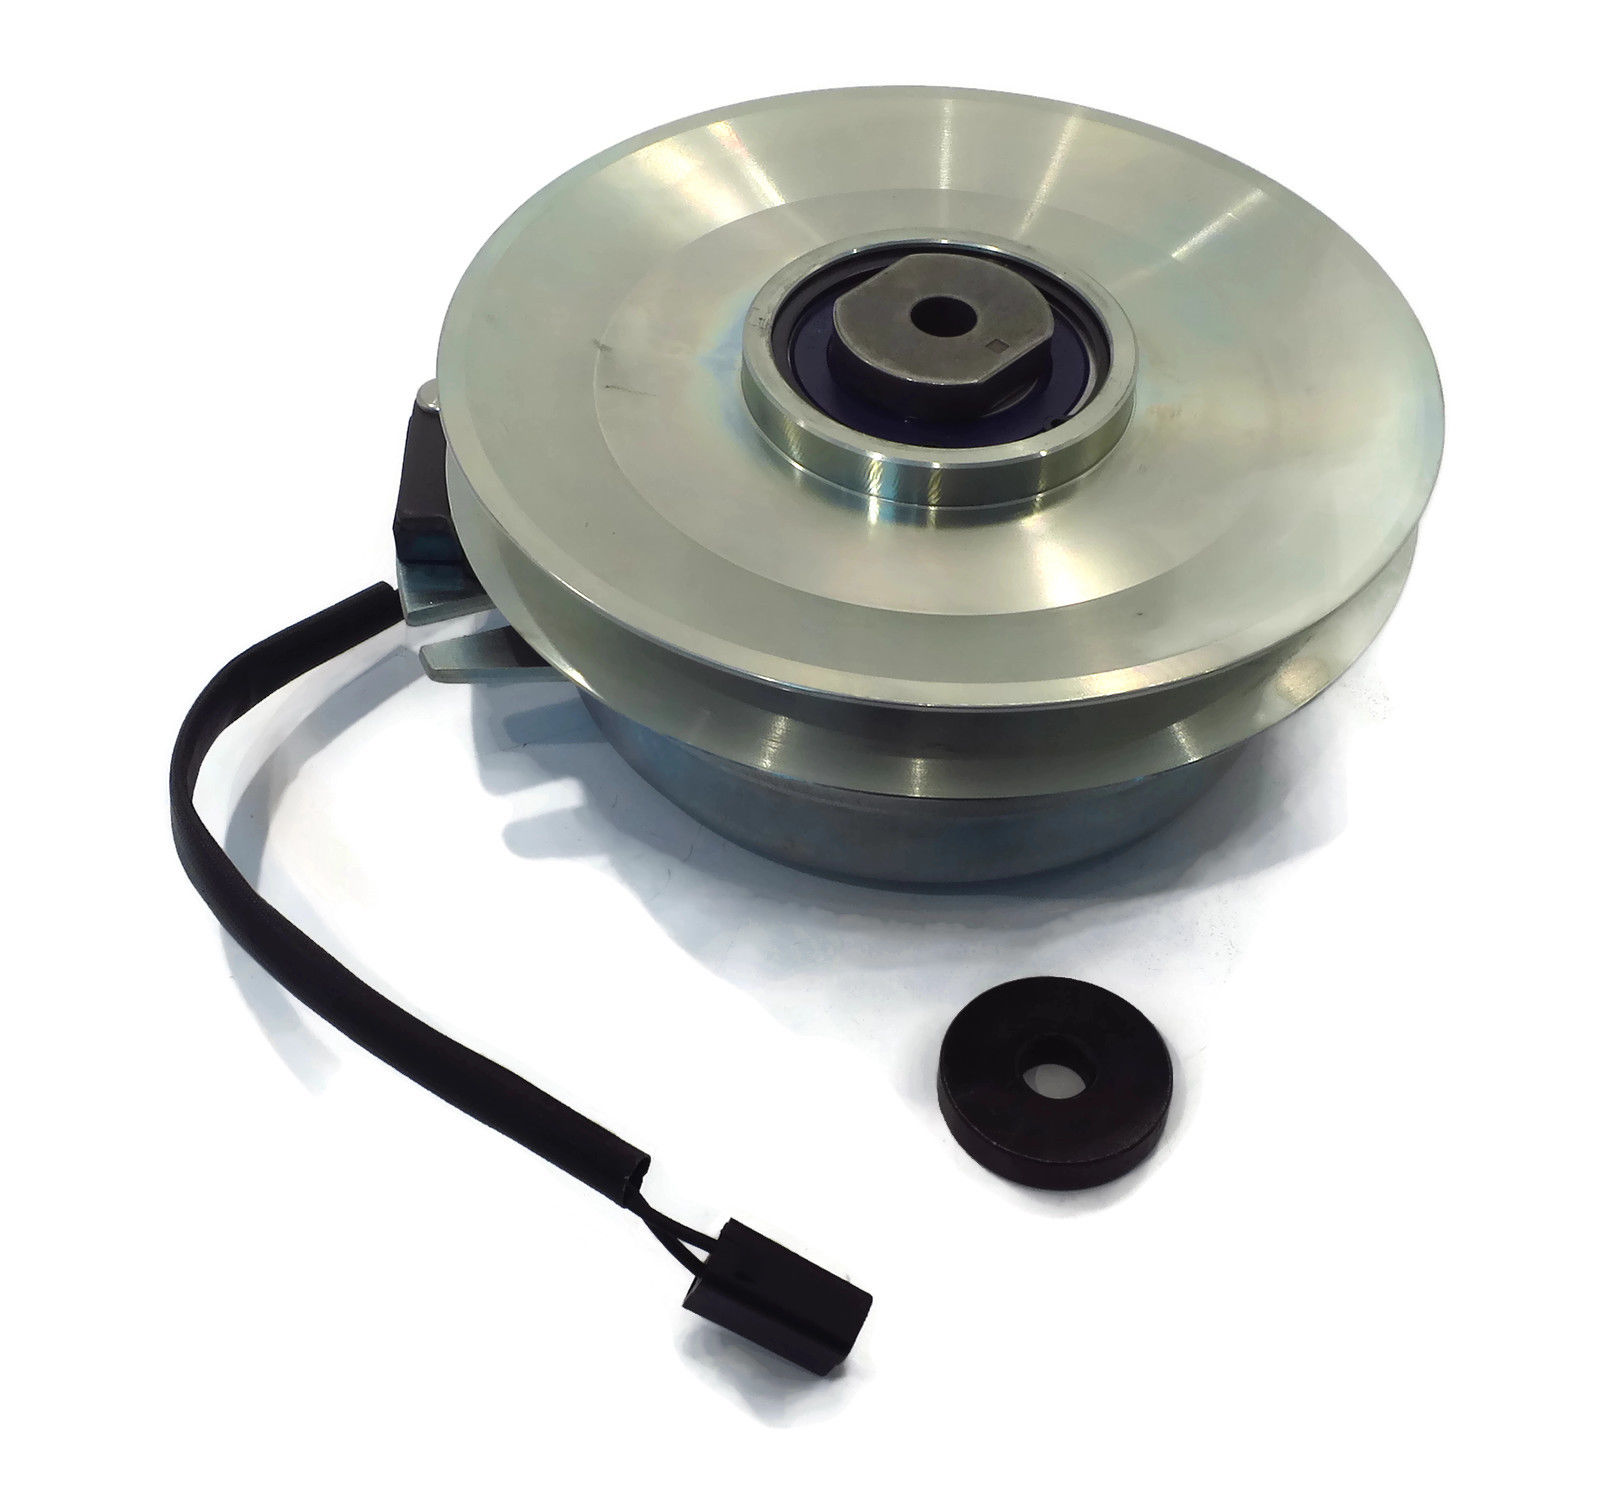 New Electric PTO Clutch replaces Stens 255-339, 255339 - Lawn Mower Engine Motor by The ROP Shop